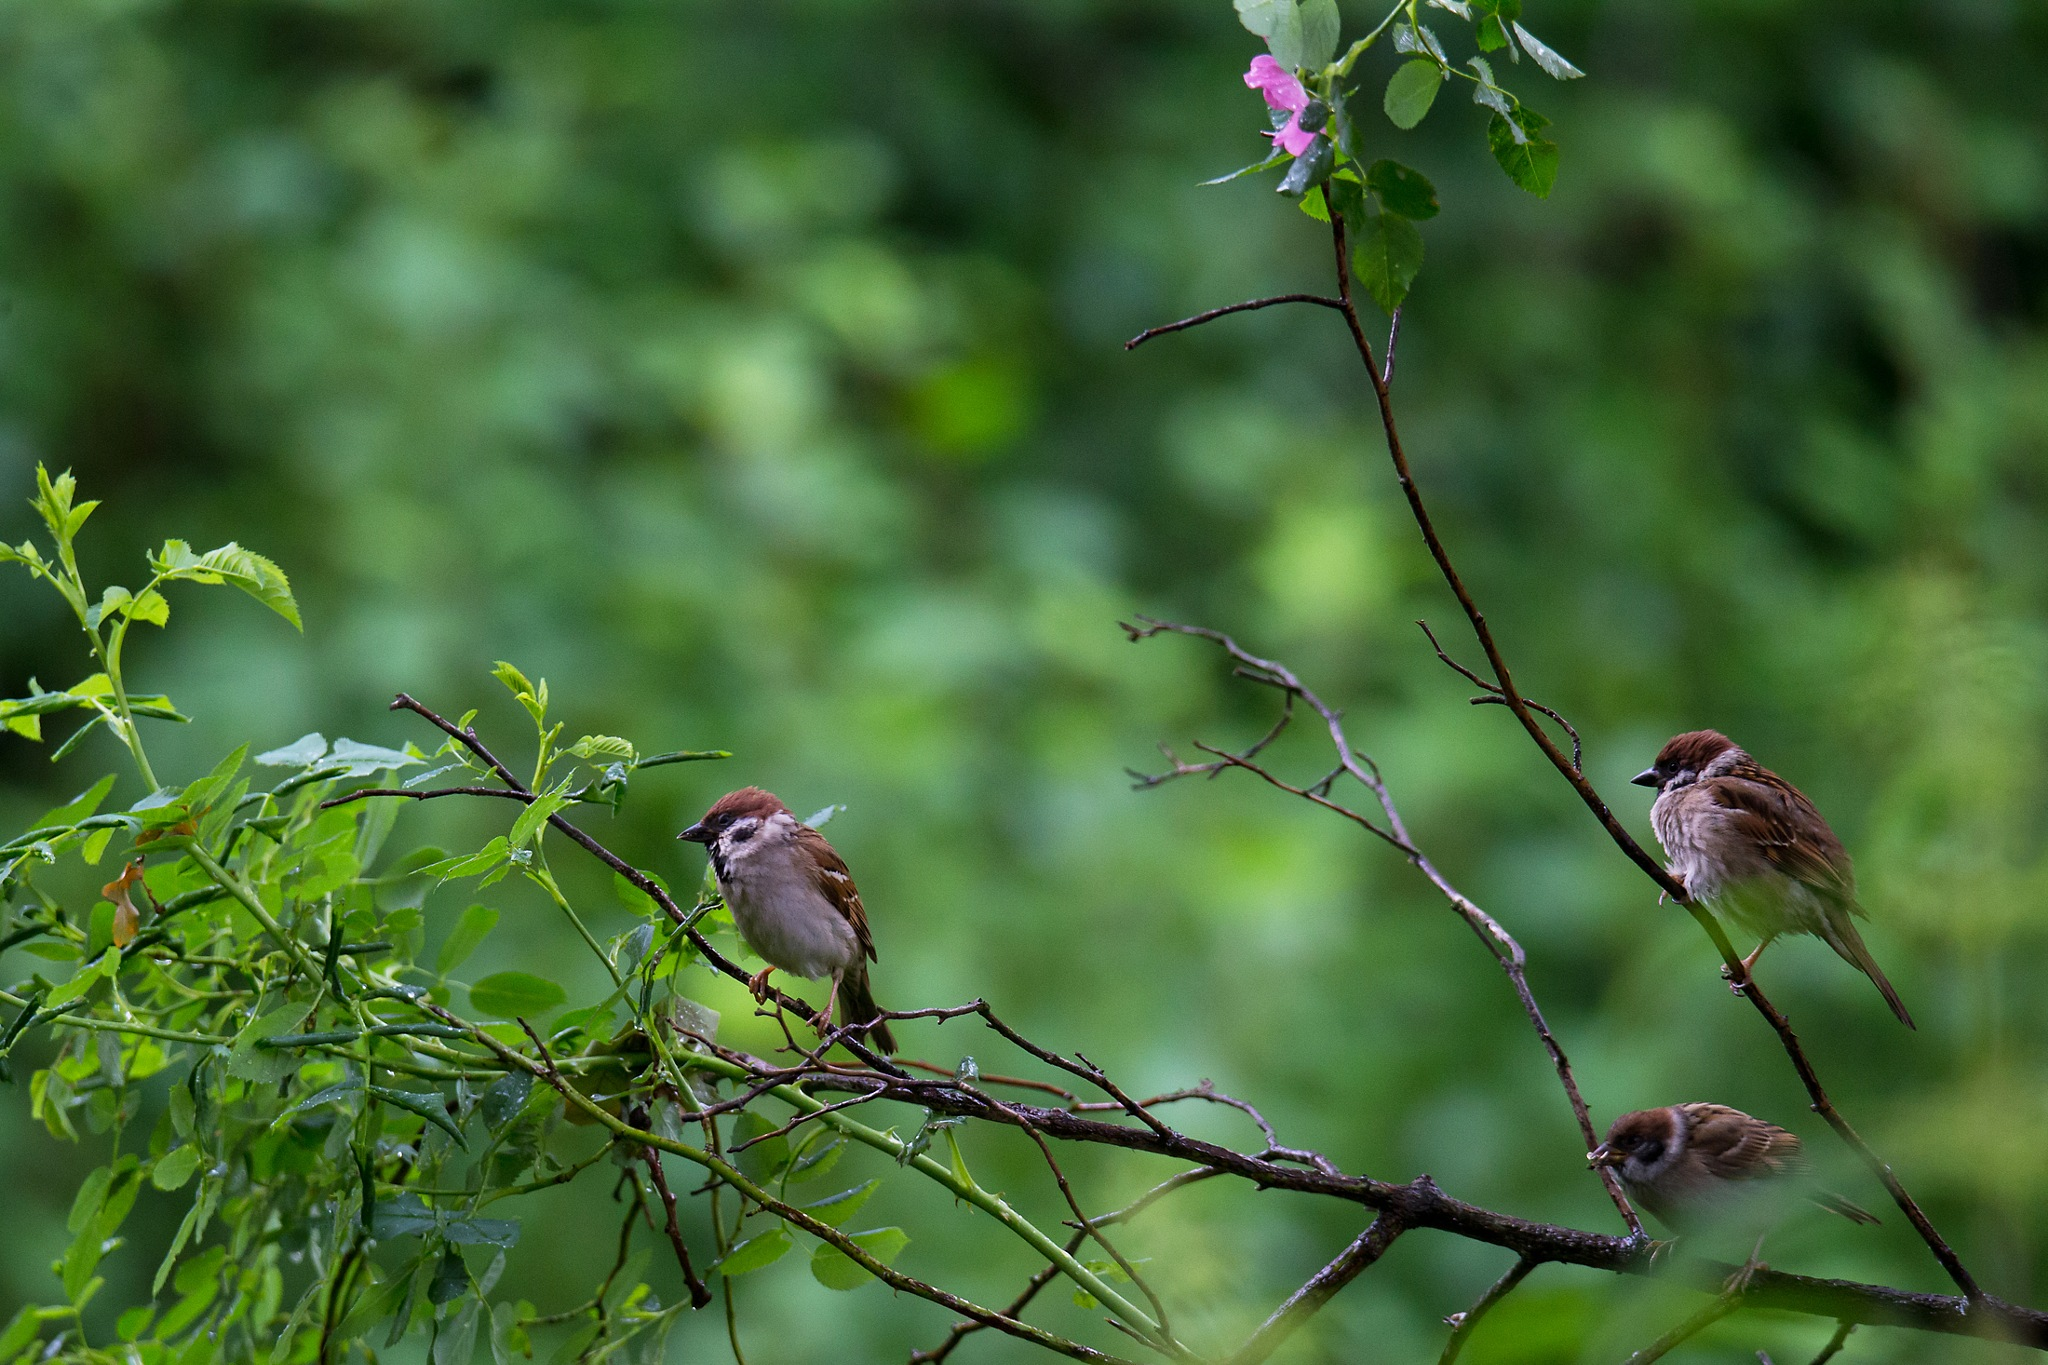 Eurasian tree sparrows by Mikael Nilsson Photography